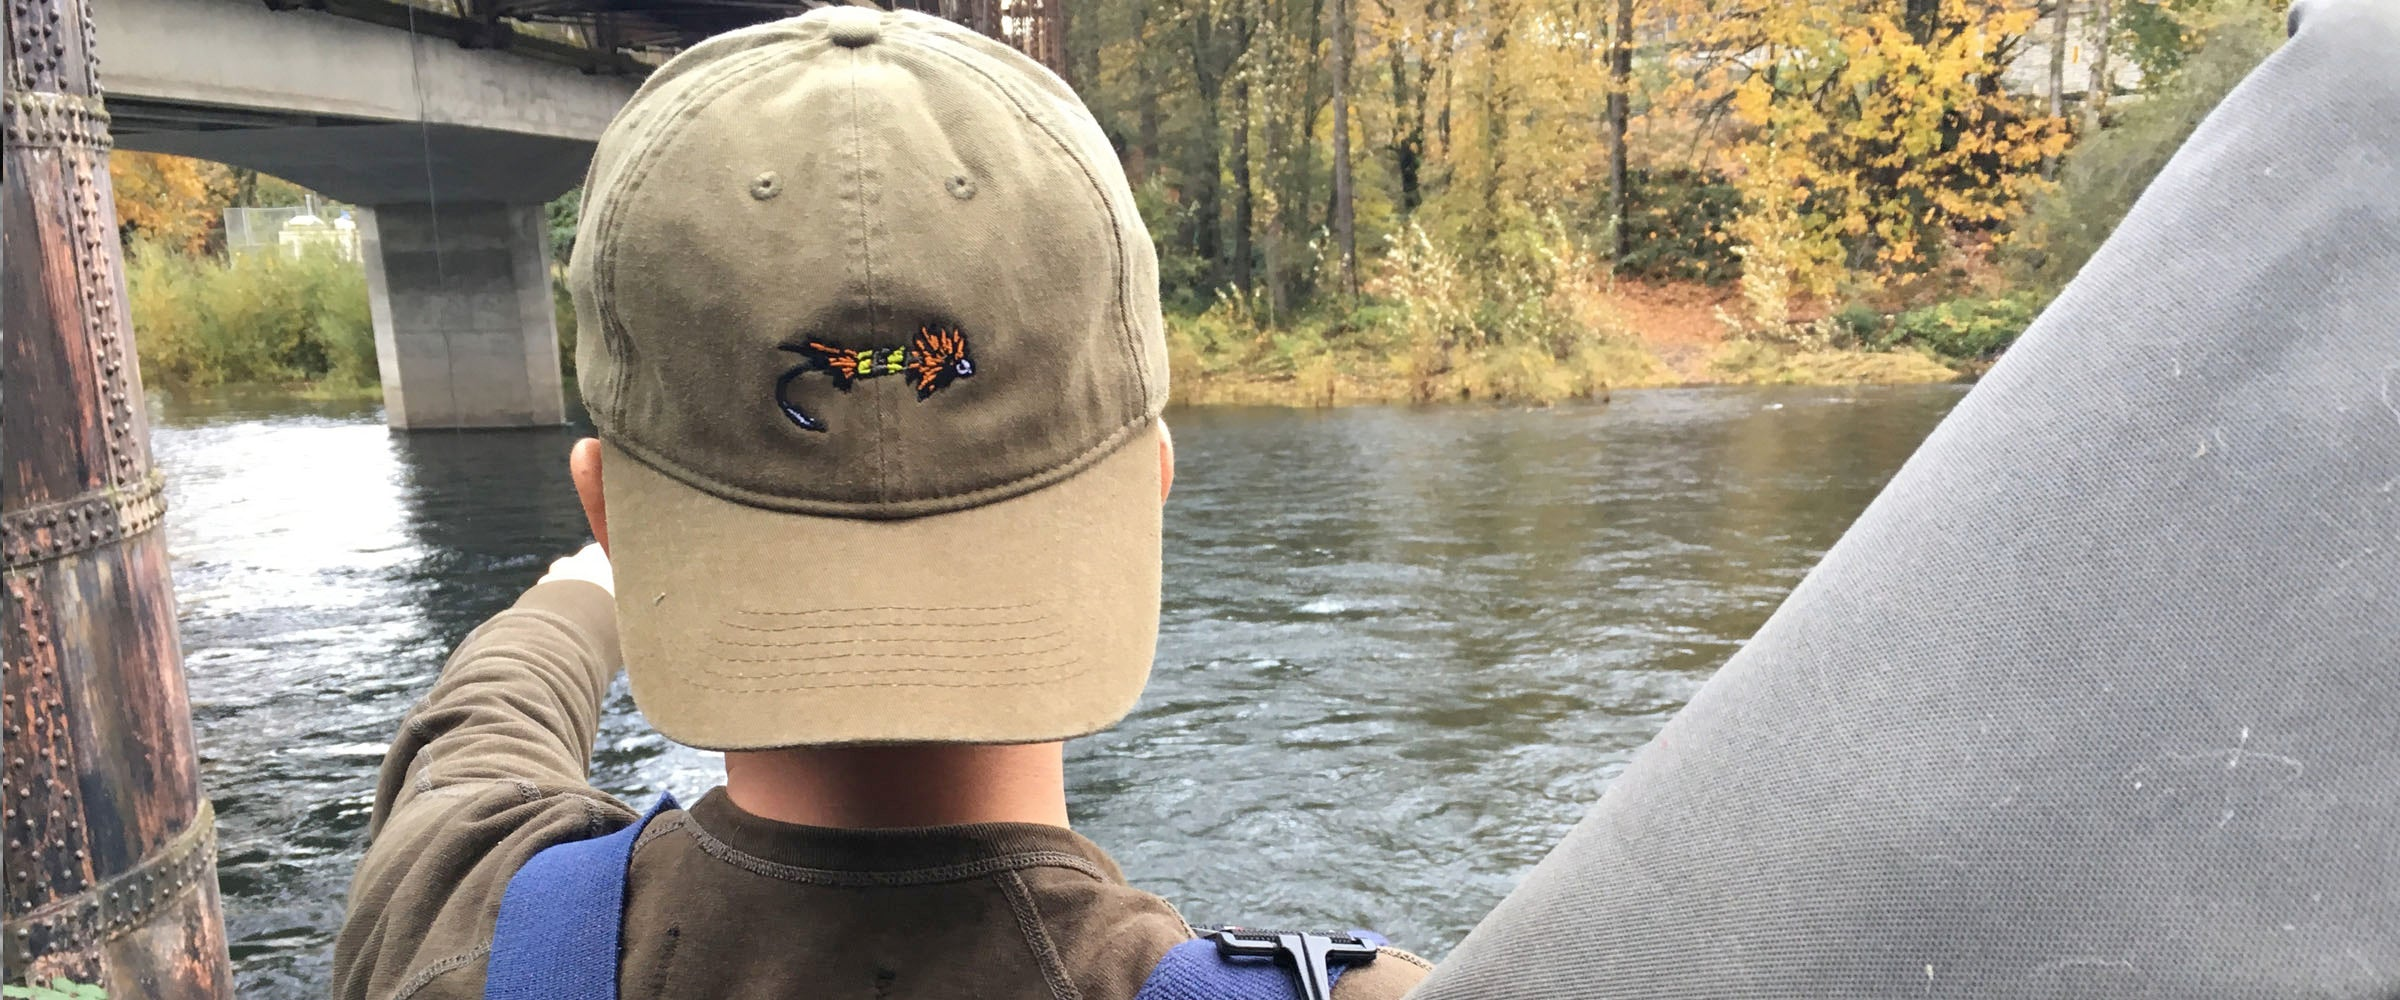 Hat maker appeals to outdoorsy types